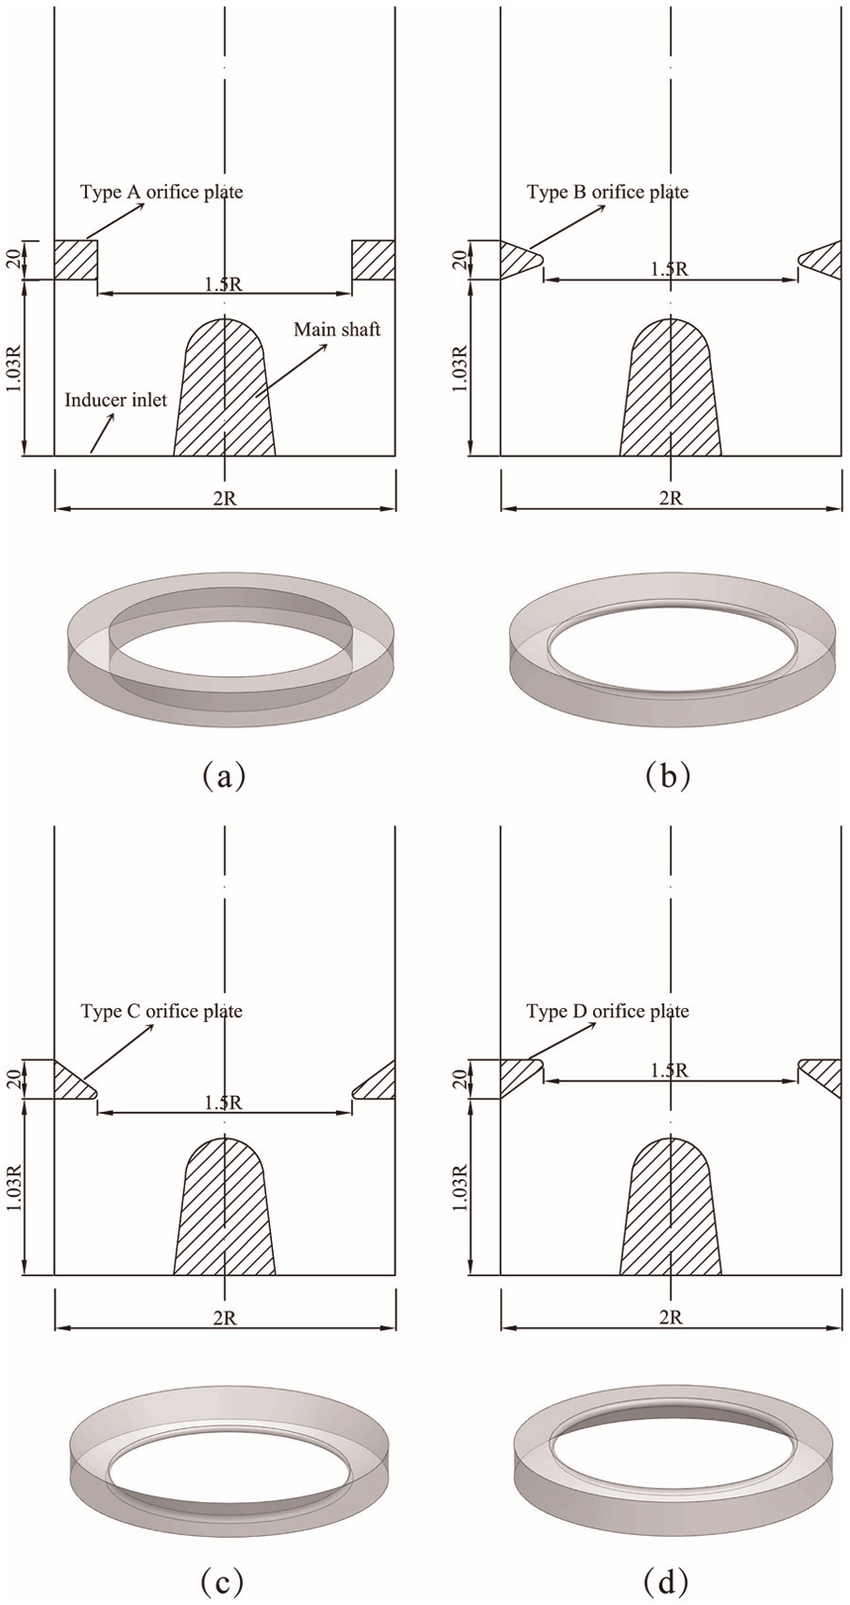 hight resolution of schematic diagram of the orifice plates a type a orifice plate